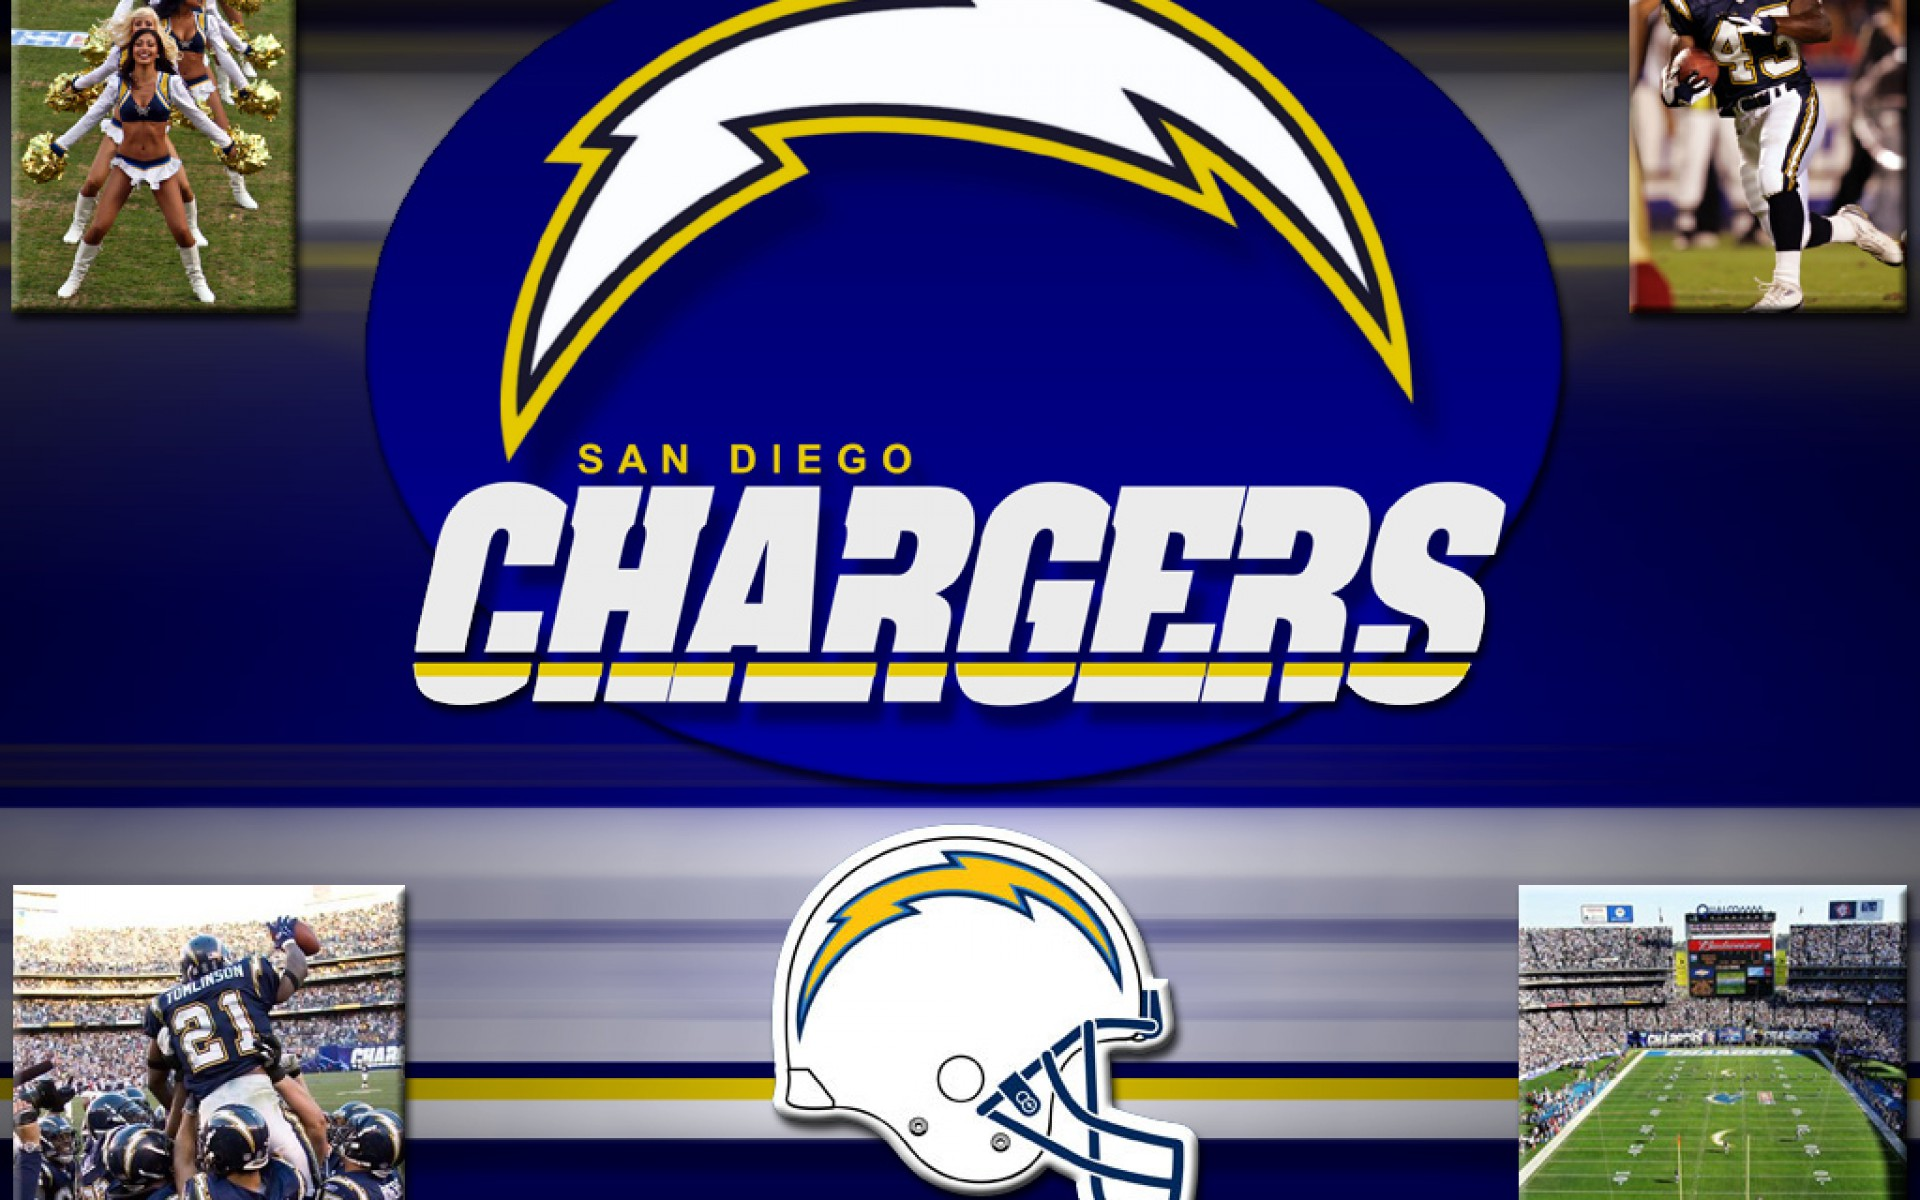 SAN DIEGO CHARGERS nfl football nm wallpaper | 1920x1200 ... Qualcomm Stadium Chargers Wallpaper